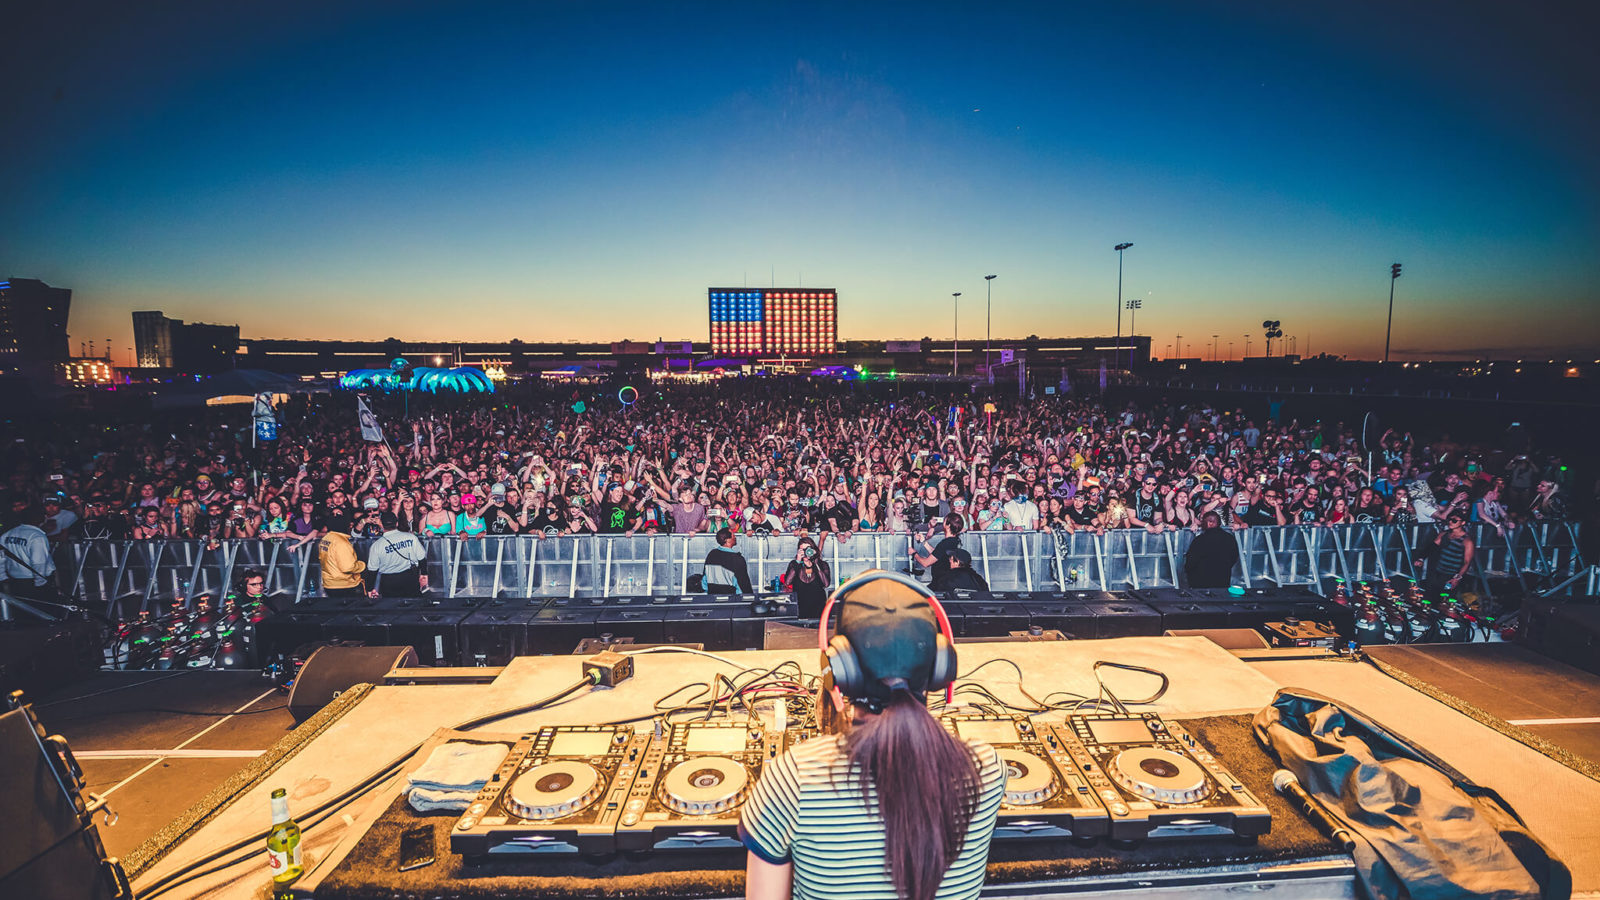 rezz lights up the stage at sunset